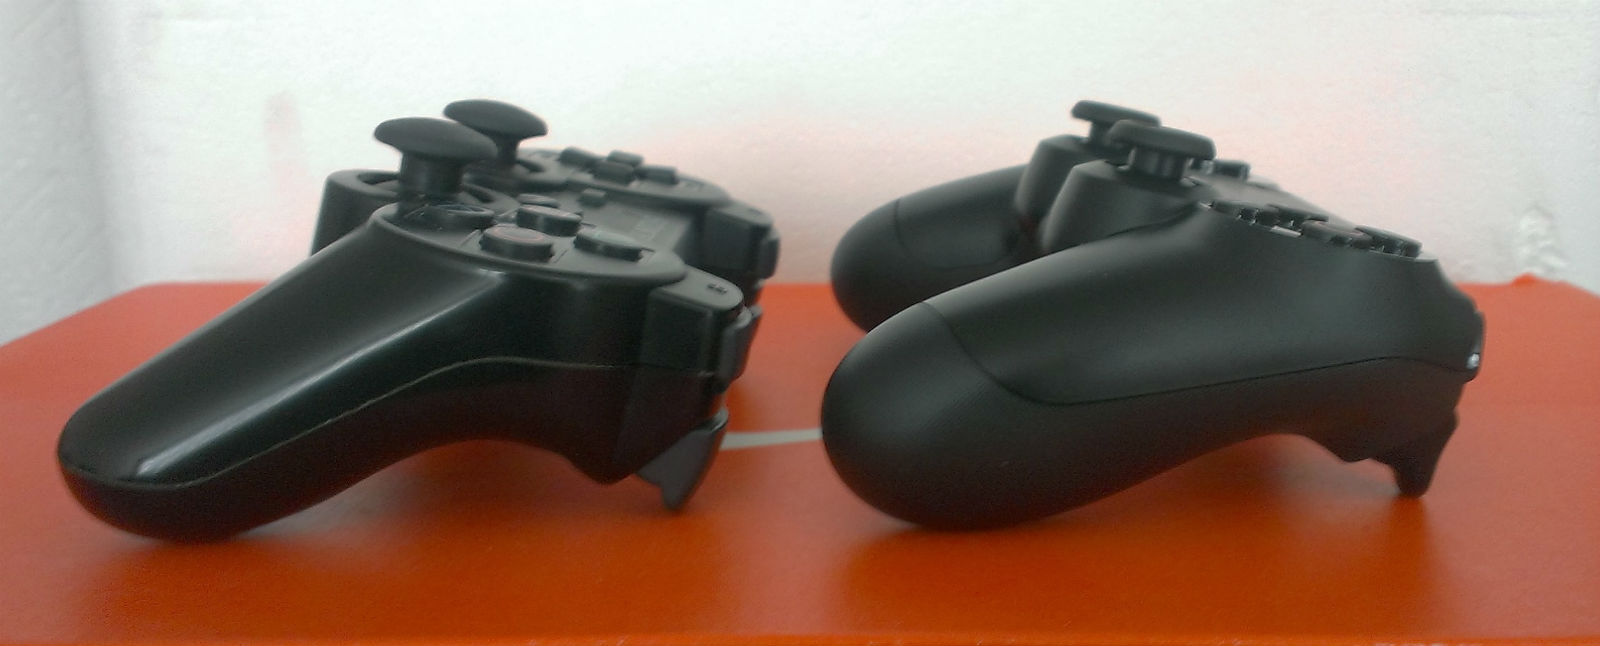 Just How Good Is The Dualshock 4 Hands On With New Ps4 Way Switch Joystick Controller Usgamer